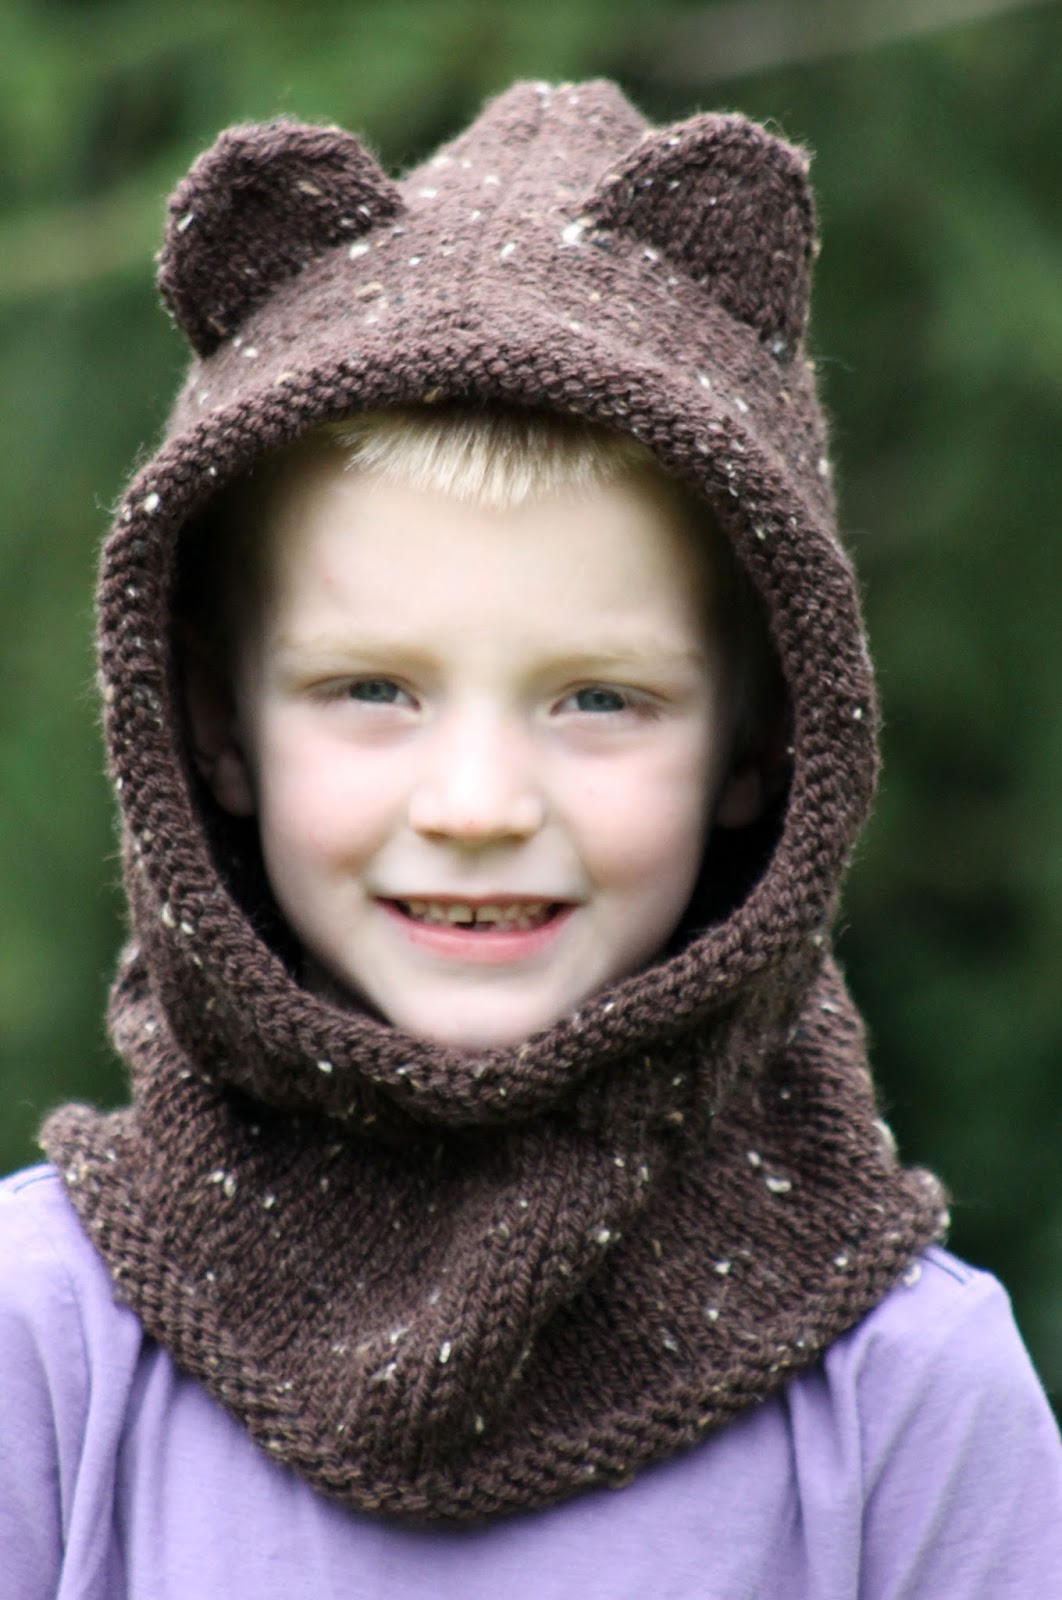 Hooded Cowl Knit Pattern : Balls to the Walls Knits: Baby Bear Hooded Cowl